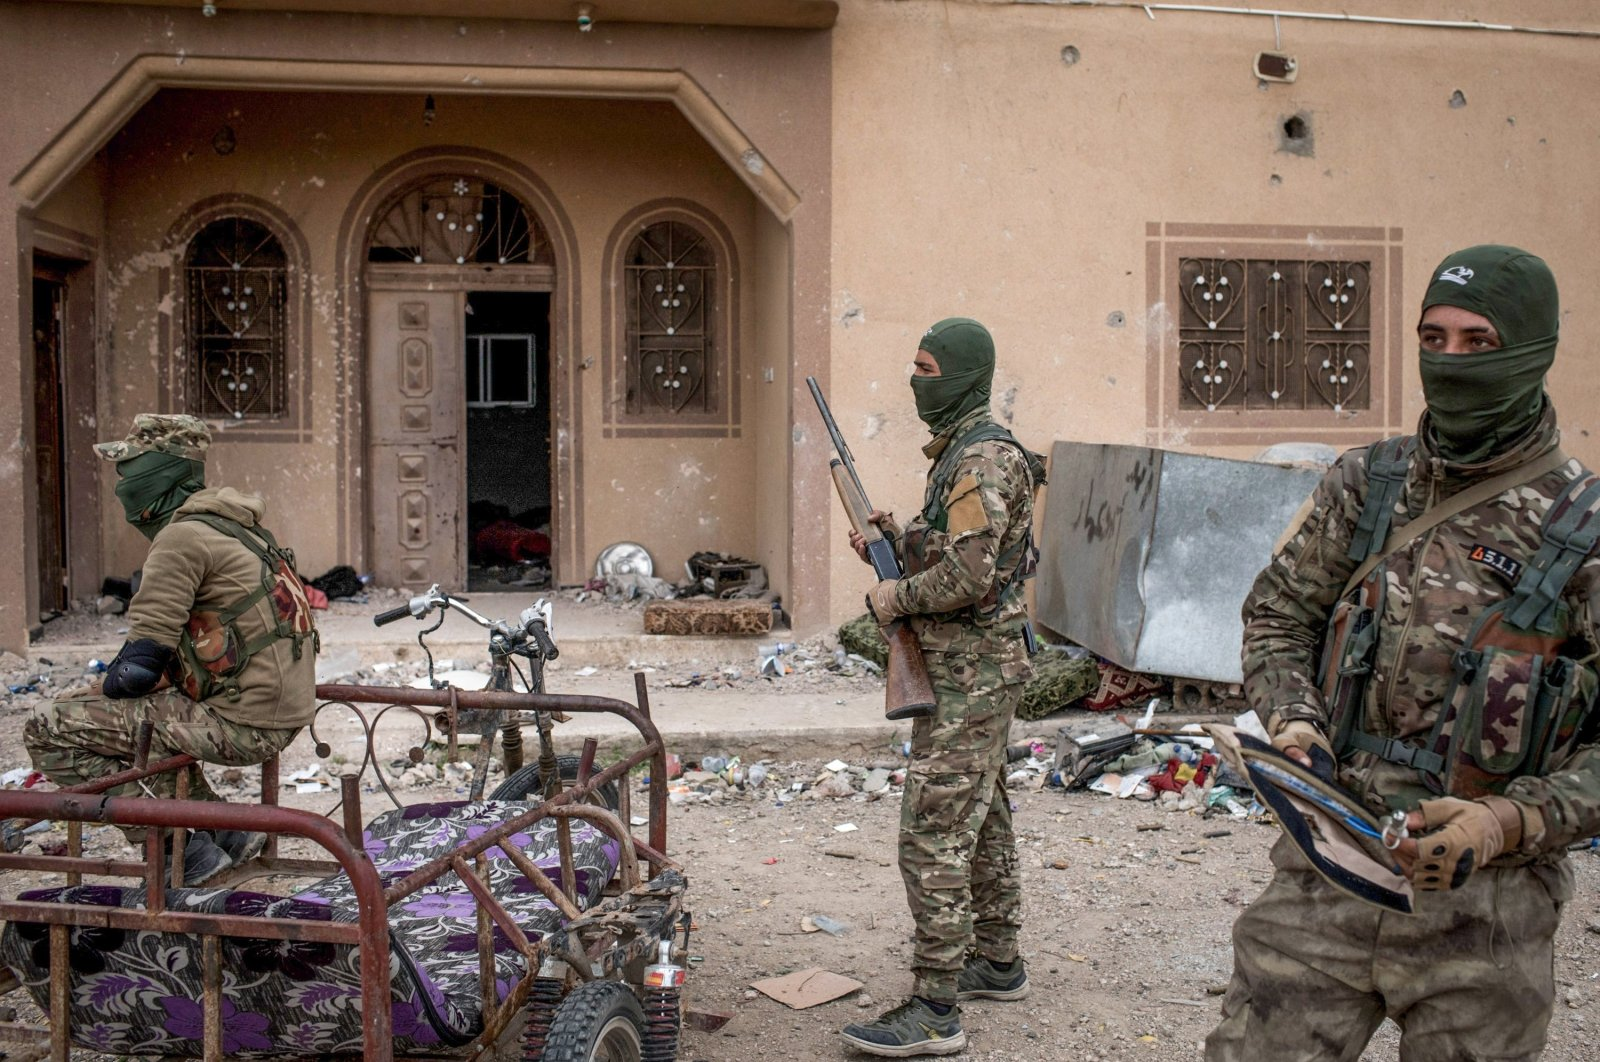 YPG/PKK terrorists are seen in front of a building in Baghouz, Syria, March 24, 2019. (Getty Images File Photo)